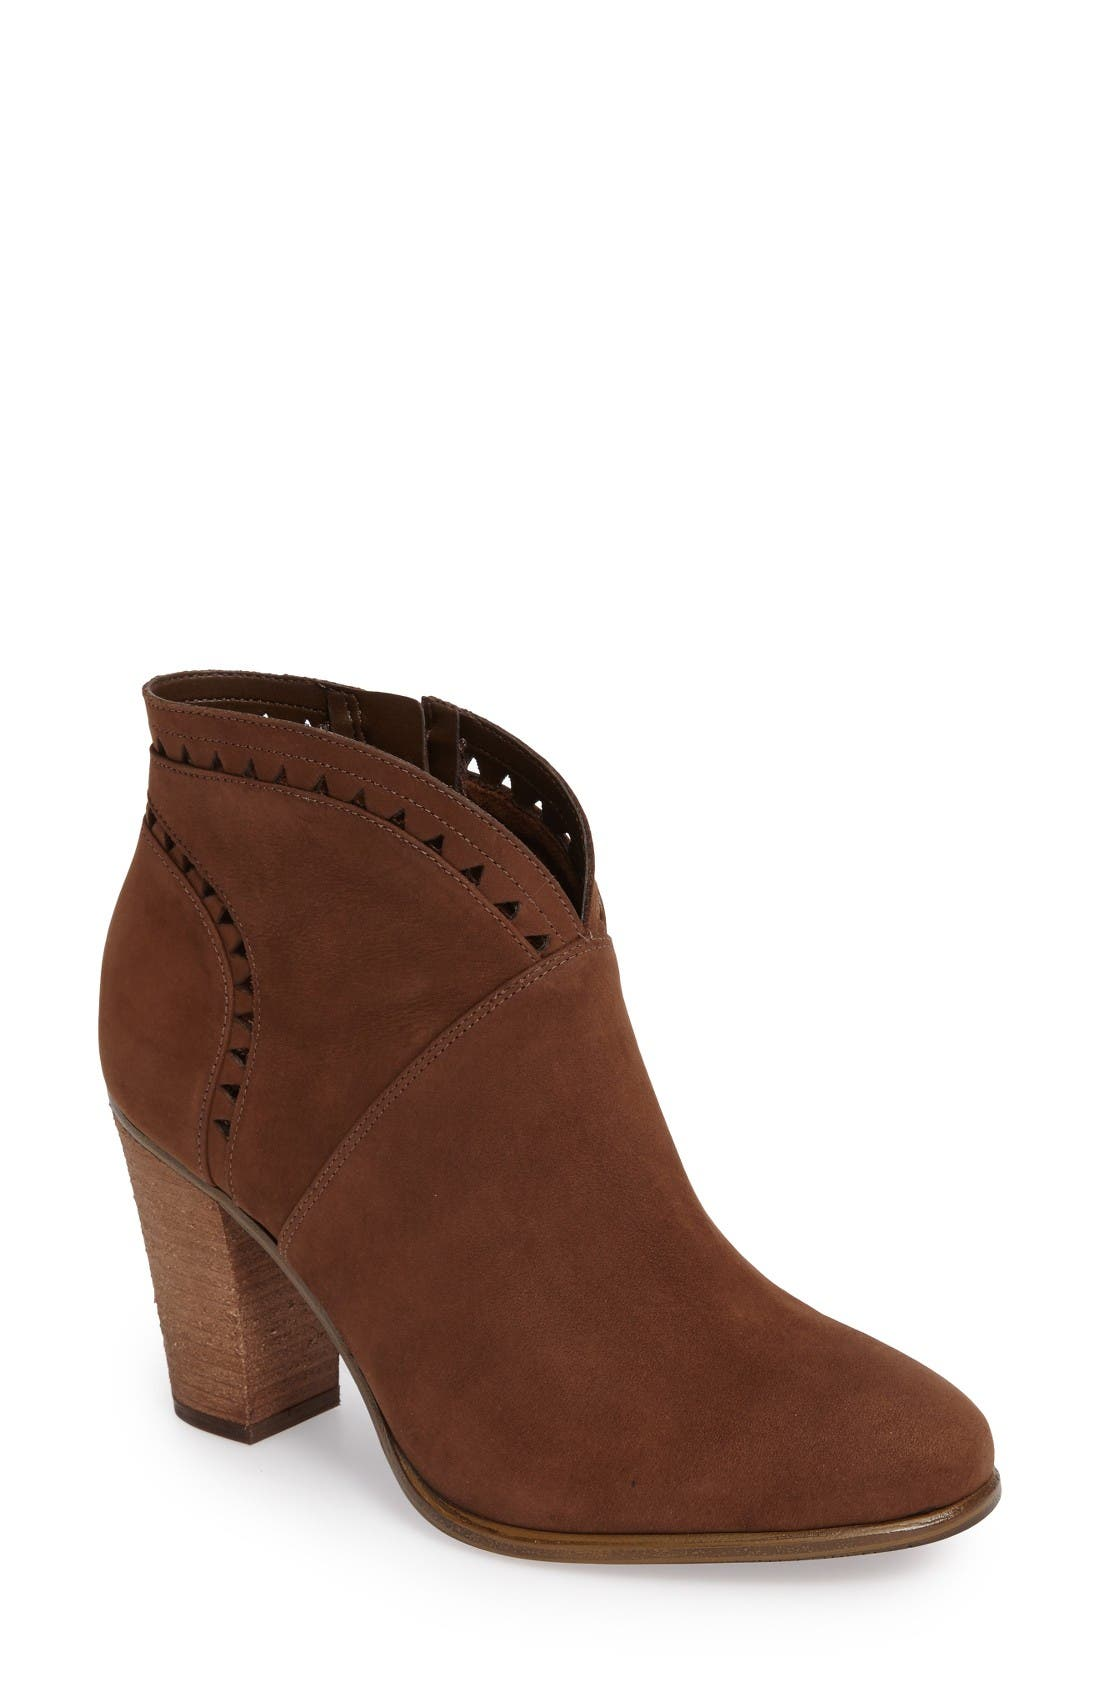 Alternate Image 1 Selected - Vince Camuto Fritan Bootie (Women)